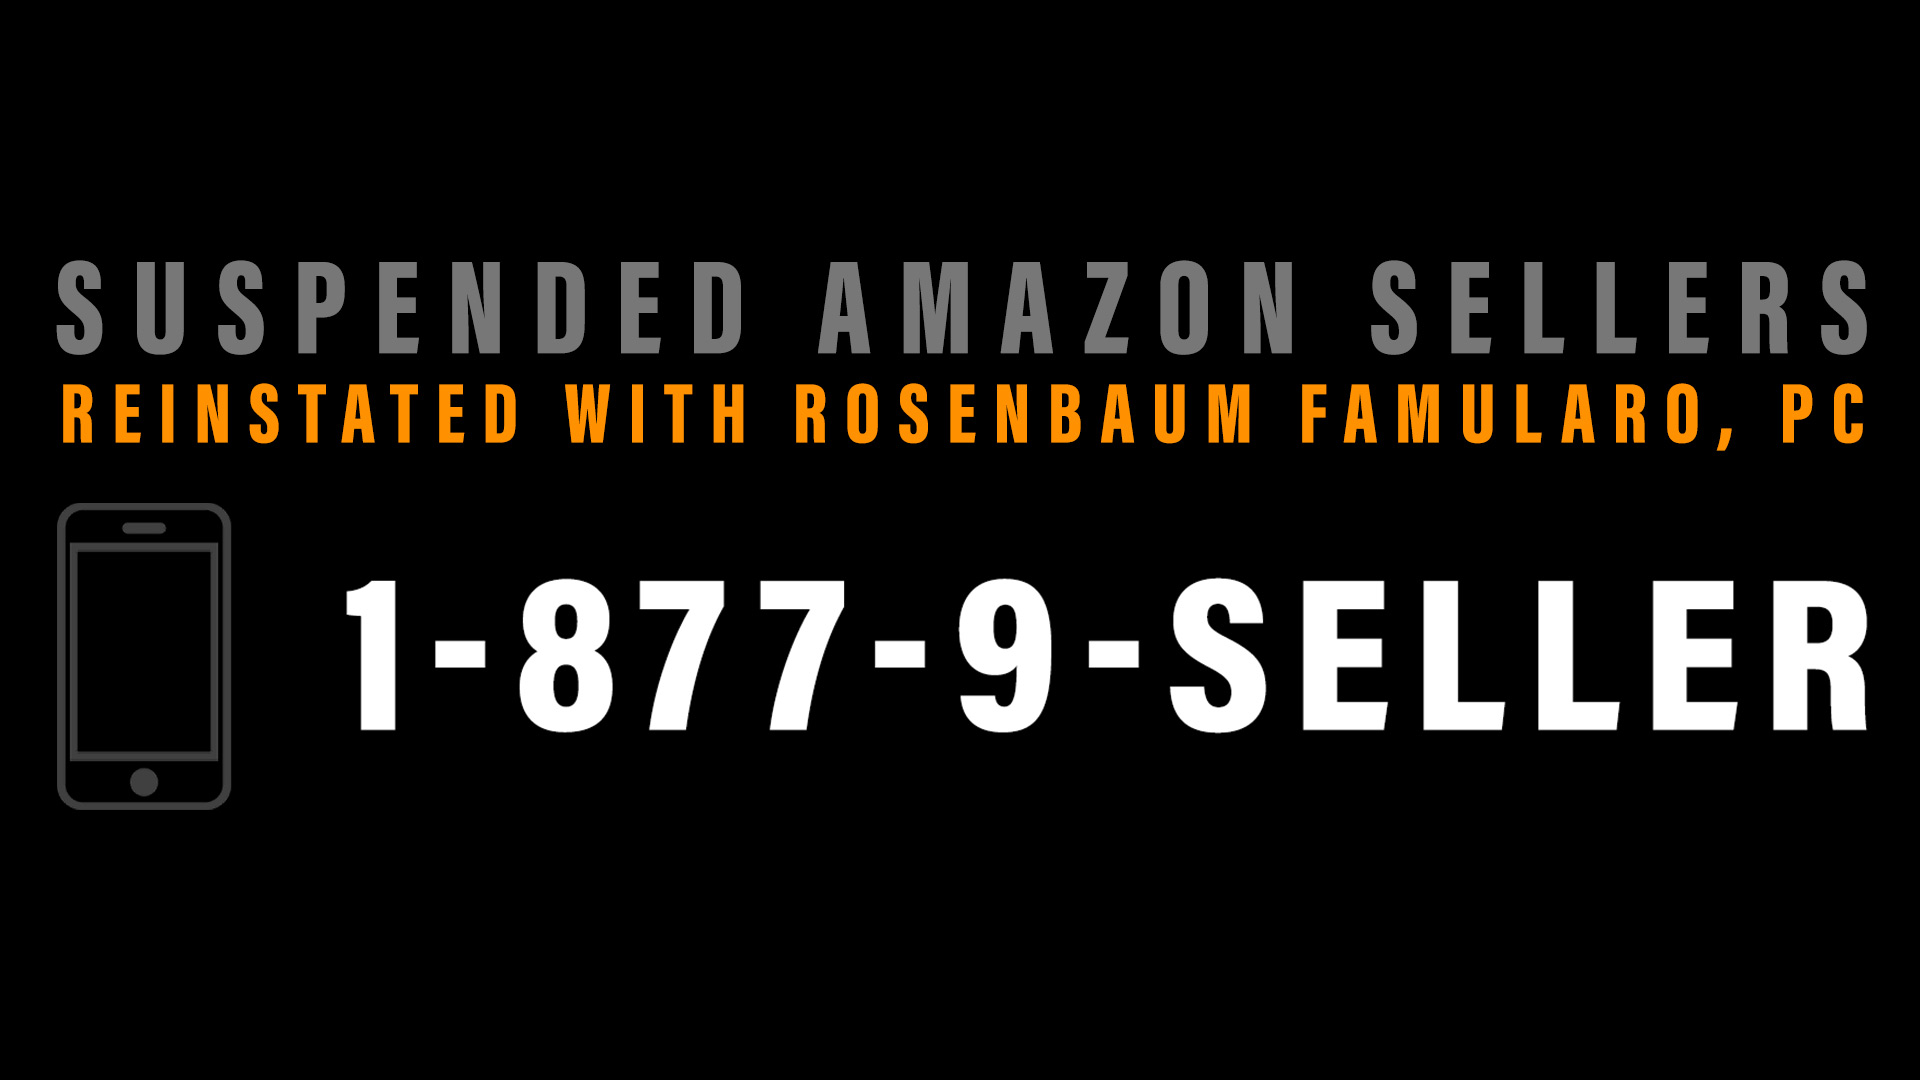 suspended sellers reinstated on Amazon